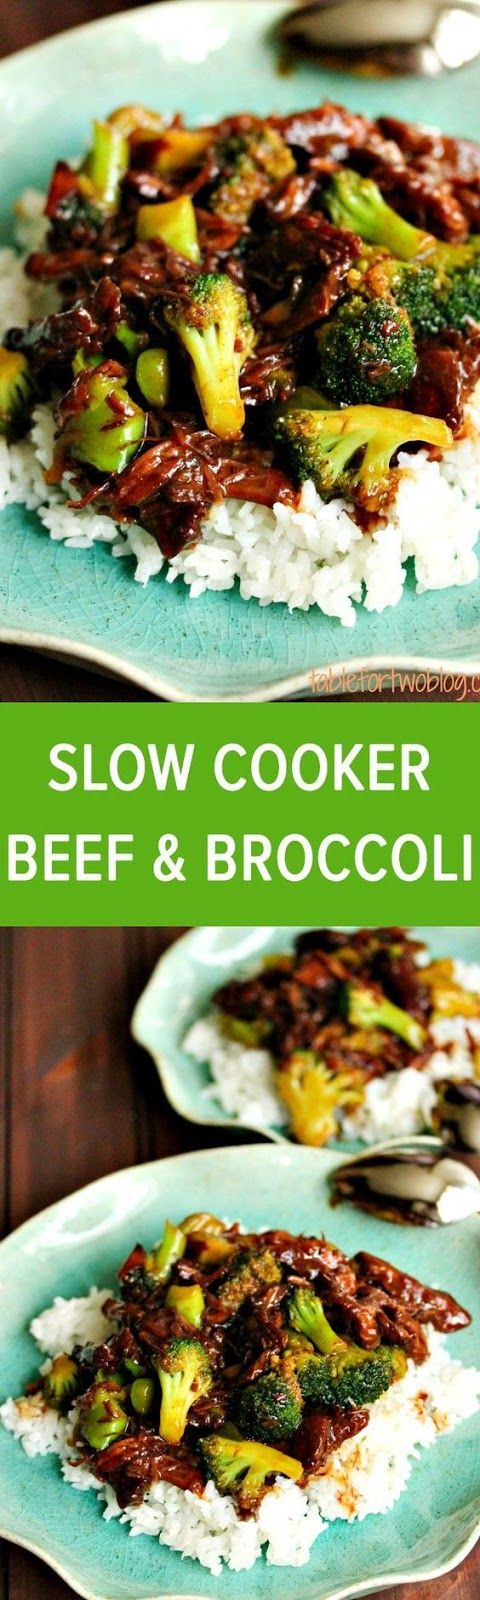 SLOW COOKER BEEF AND BROCCOLI   Food And Cake Recipes